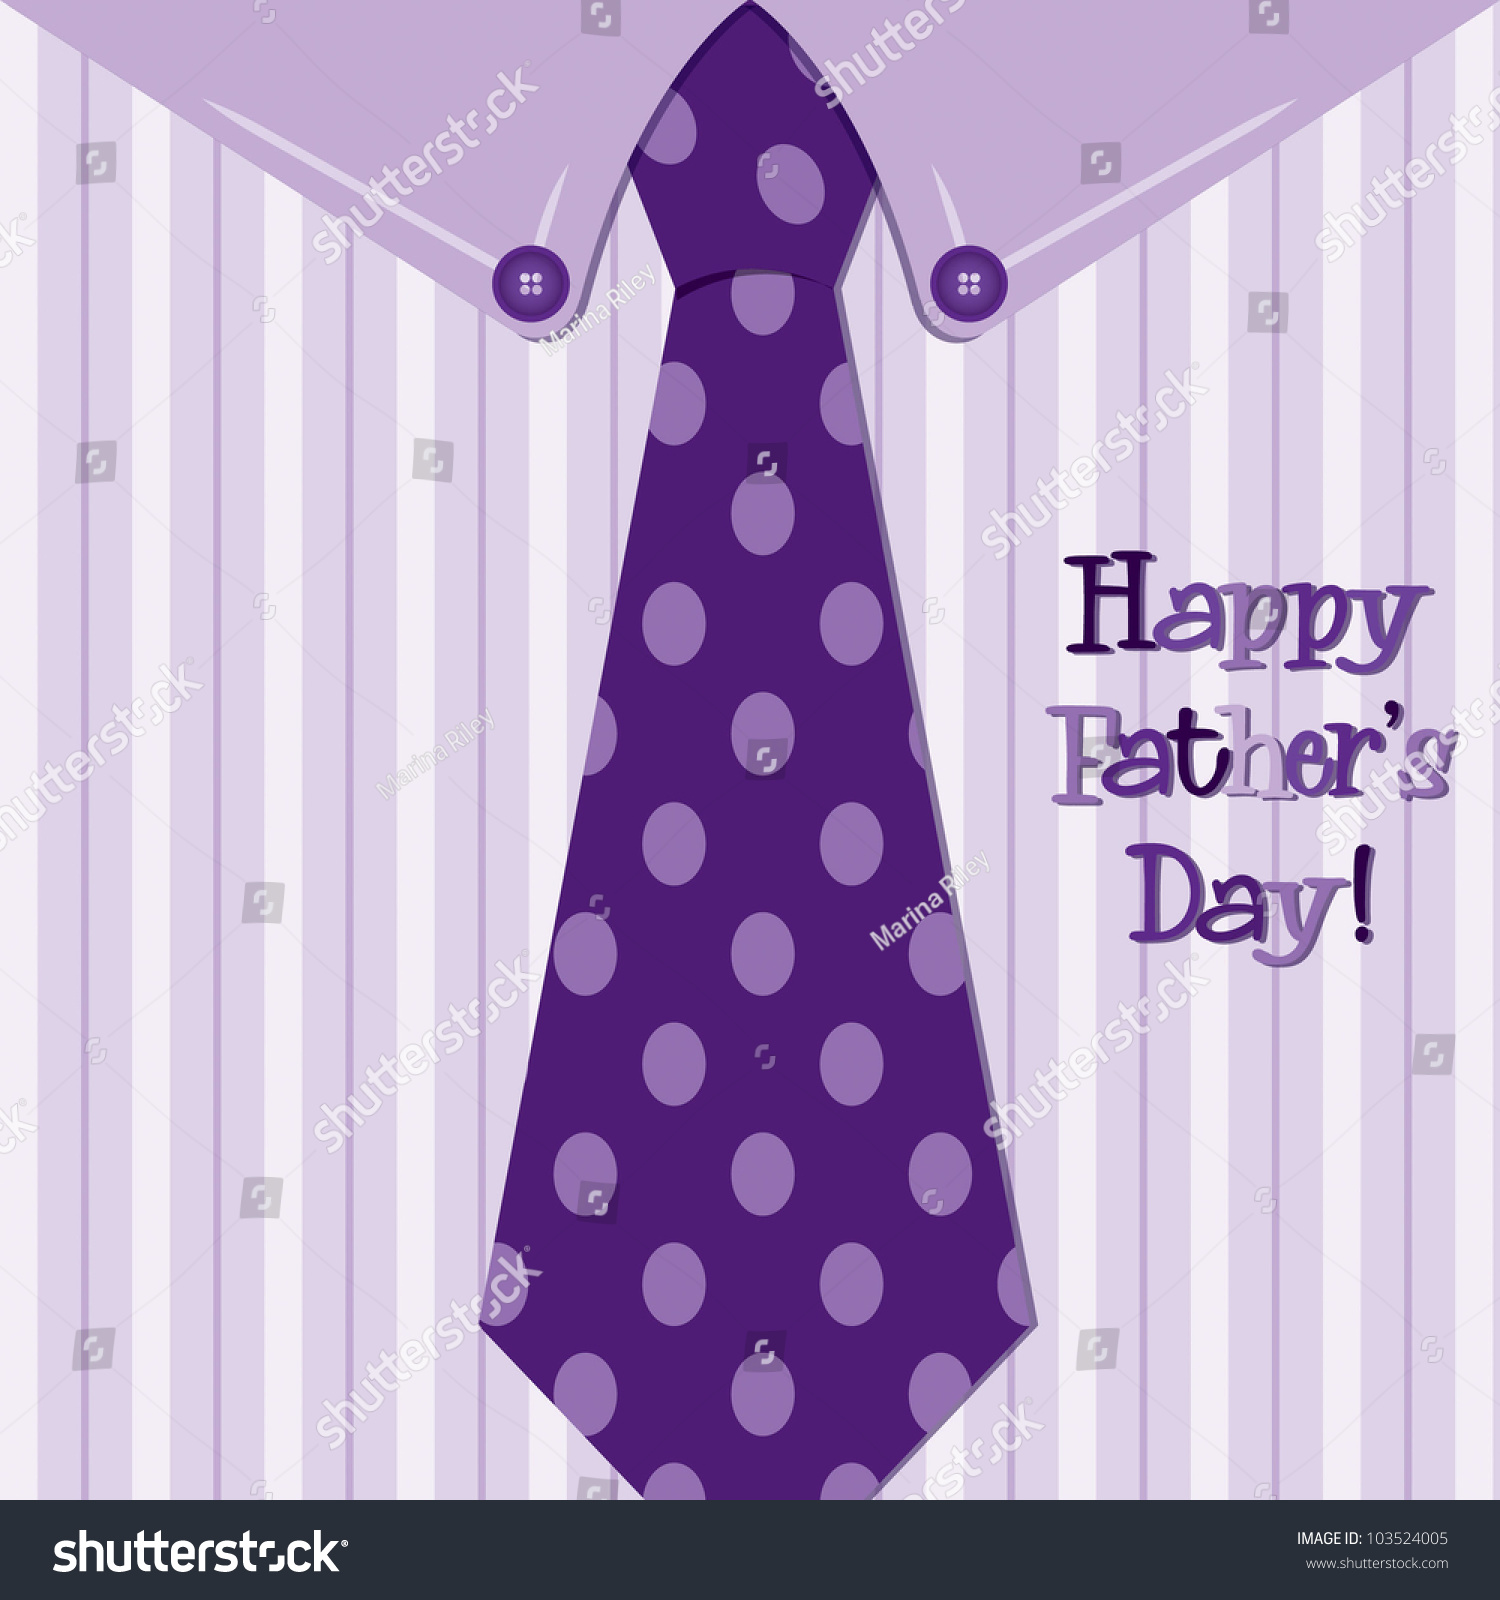 Shirt design card - Bright Shirt And Tie Happy Father S Day Neck Tie Card In Vector